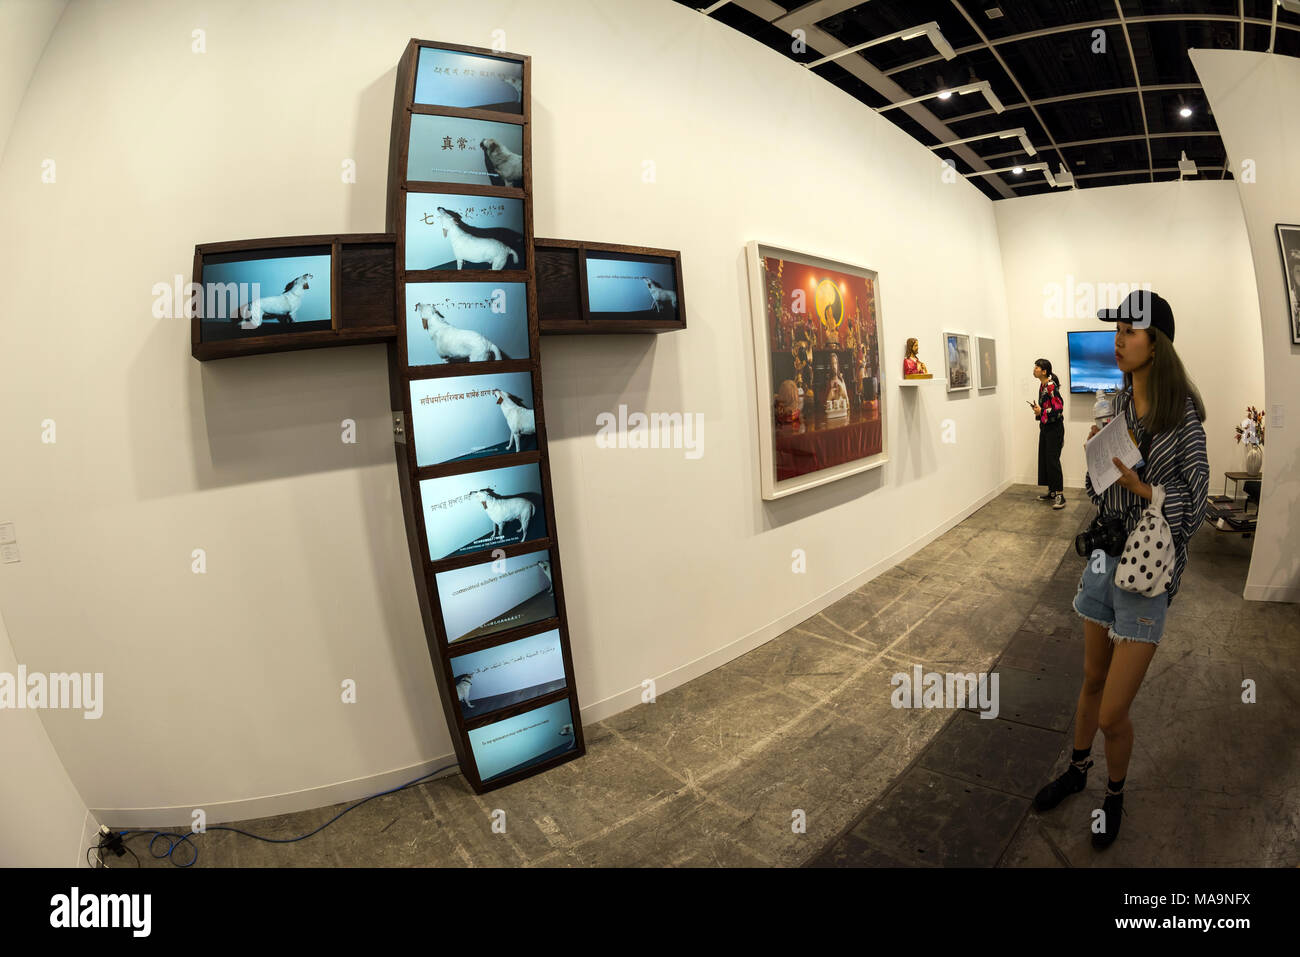 D Art Exhibition Hong Kong : March th exhibitions at the art basel show held at